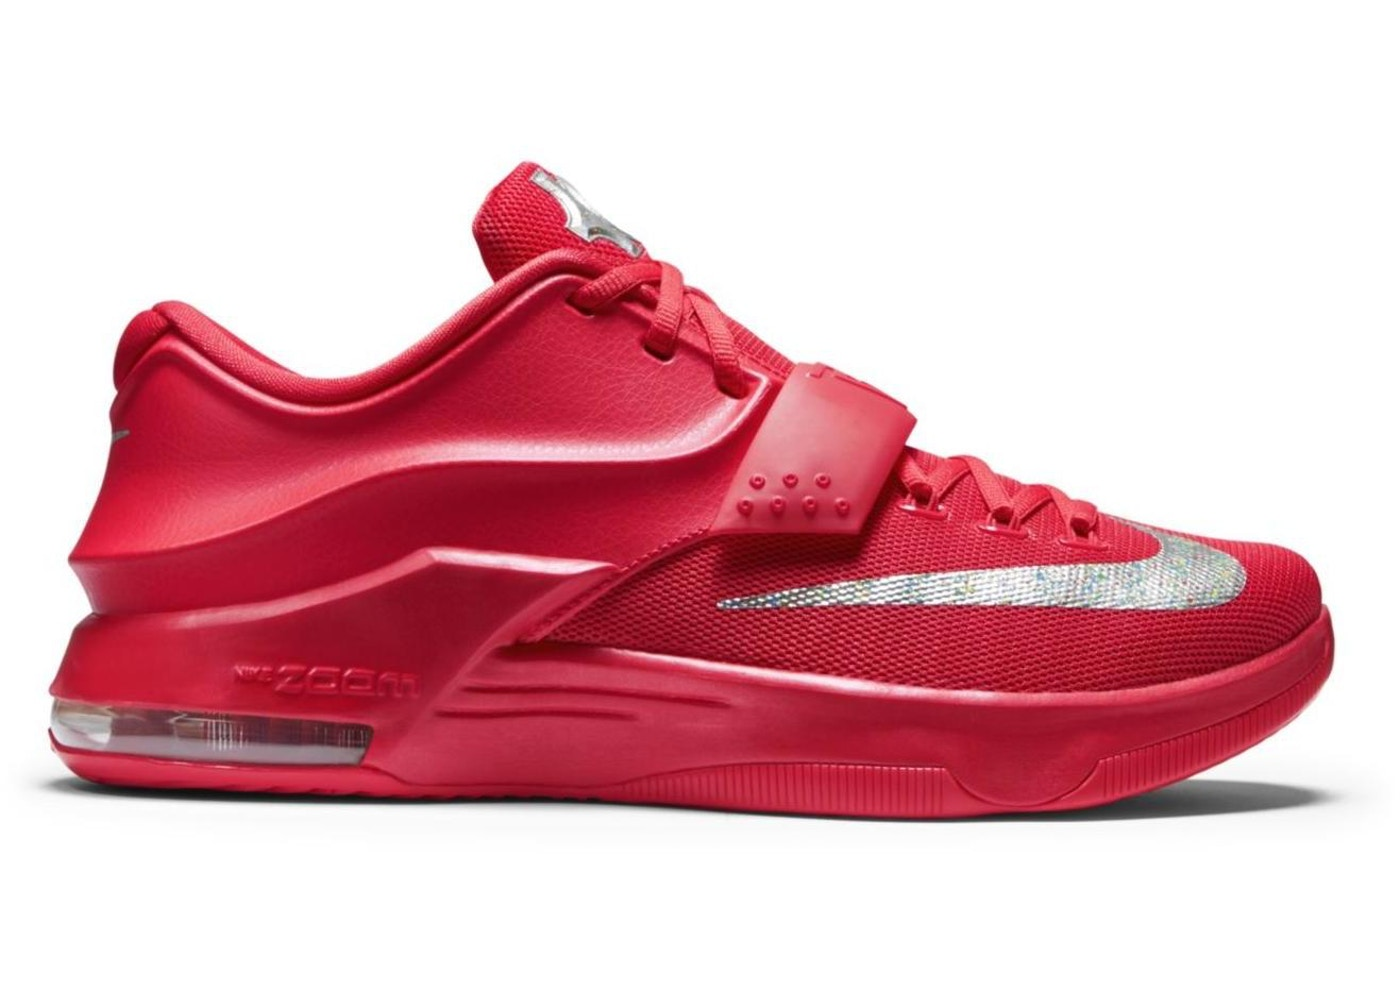 new products b5b2e 70068 Buy Nike KD 7 Shoes   Deadstock Sneakers